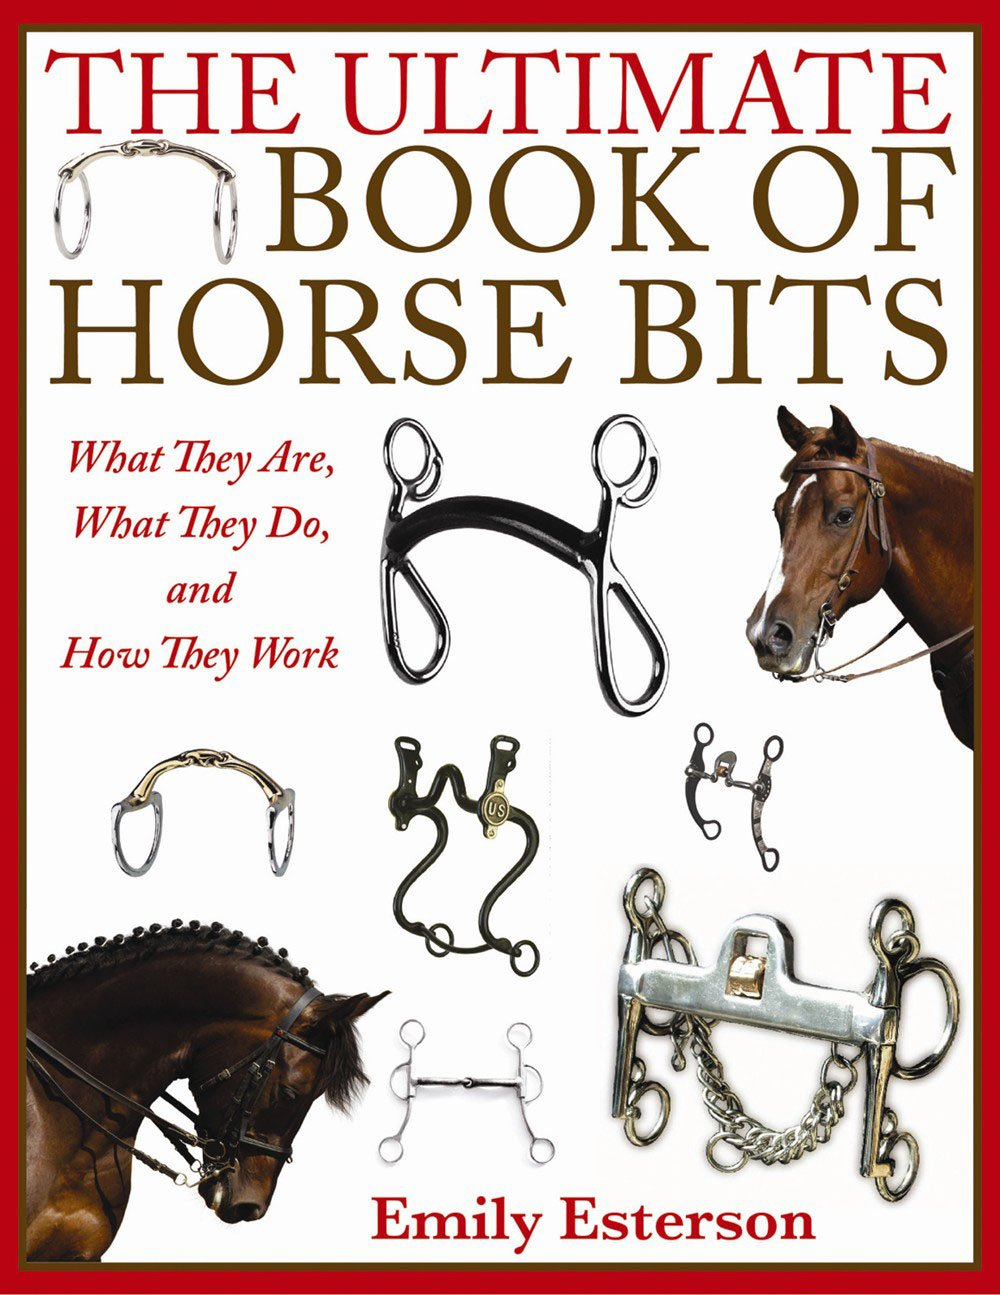 The Ultimate Book of Horse Bits: What They Are, What They Do, and How They Work by Skyhorse